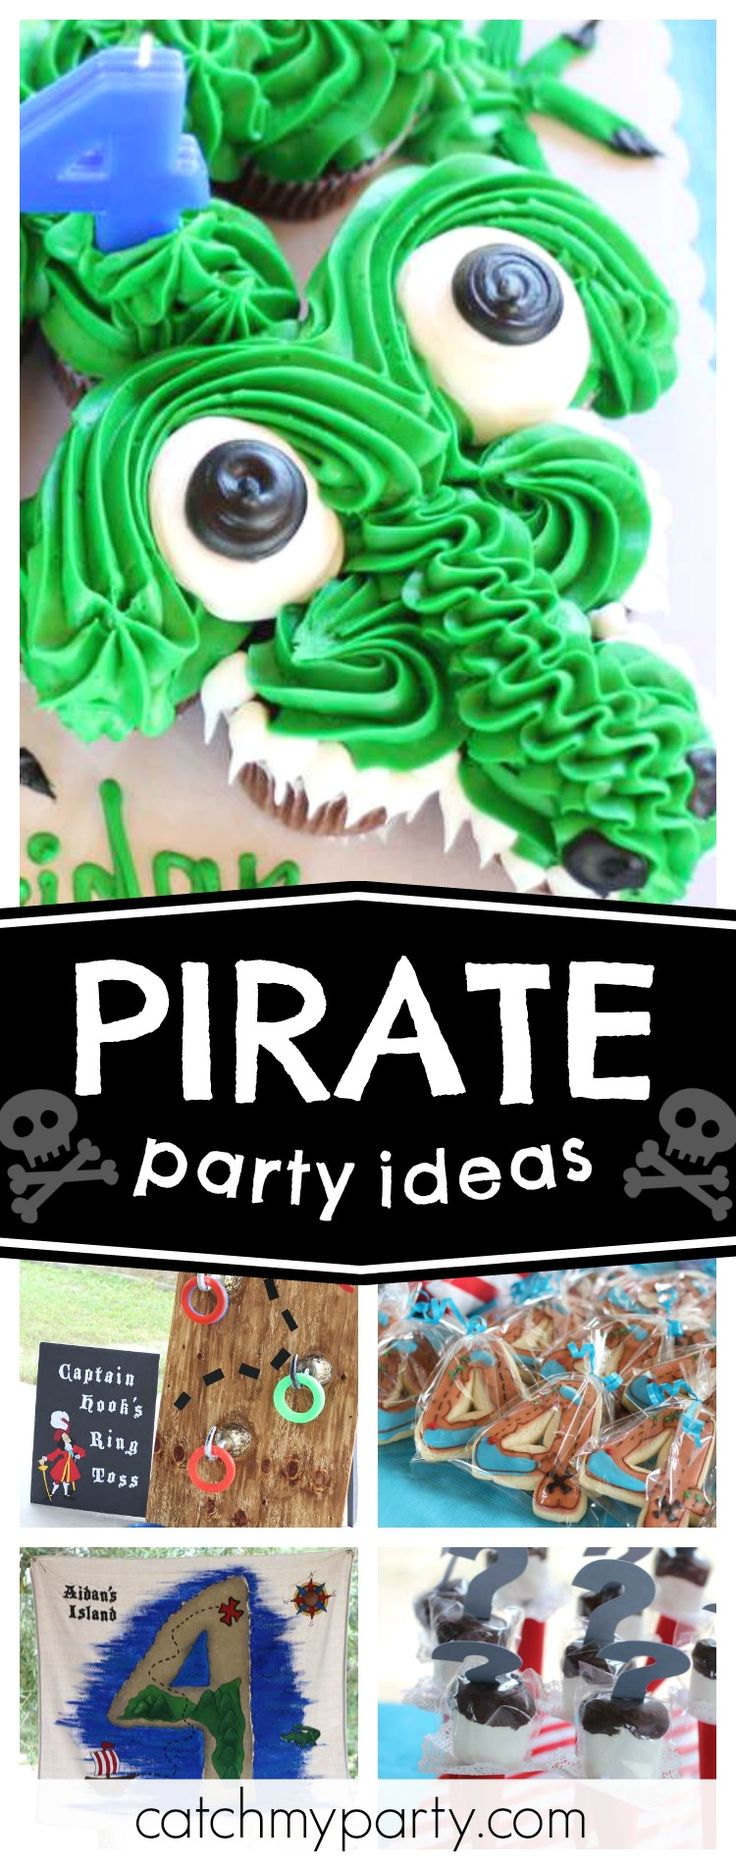 Check out this awesome Captain Hook inspired Pirate birthday party. The crocodile cupcakes are amazing!! See more party ideas and share yours at CatchMyParty.com #pirate #captainhook